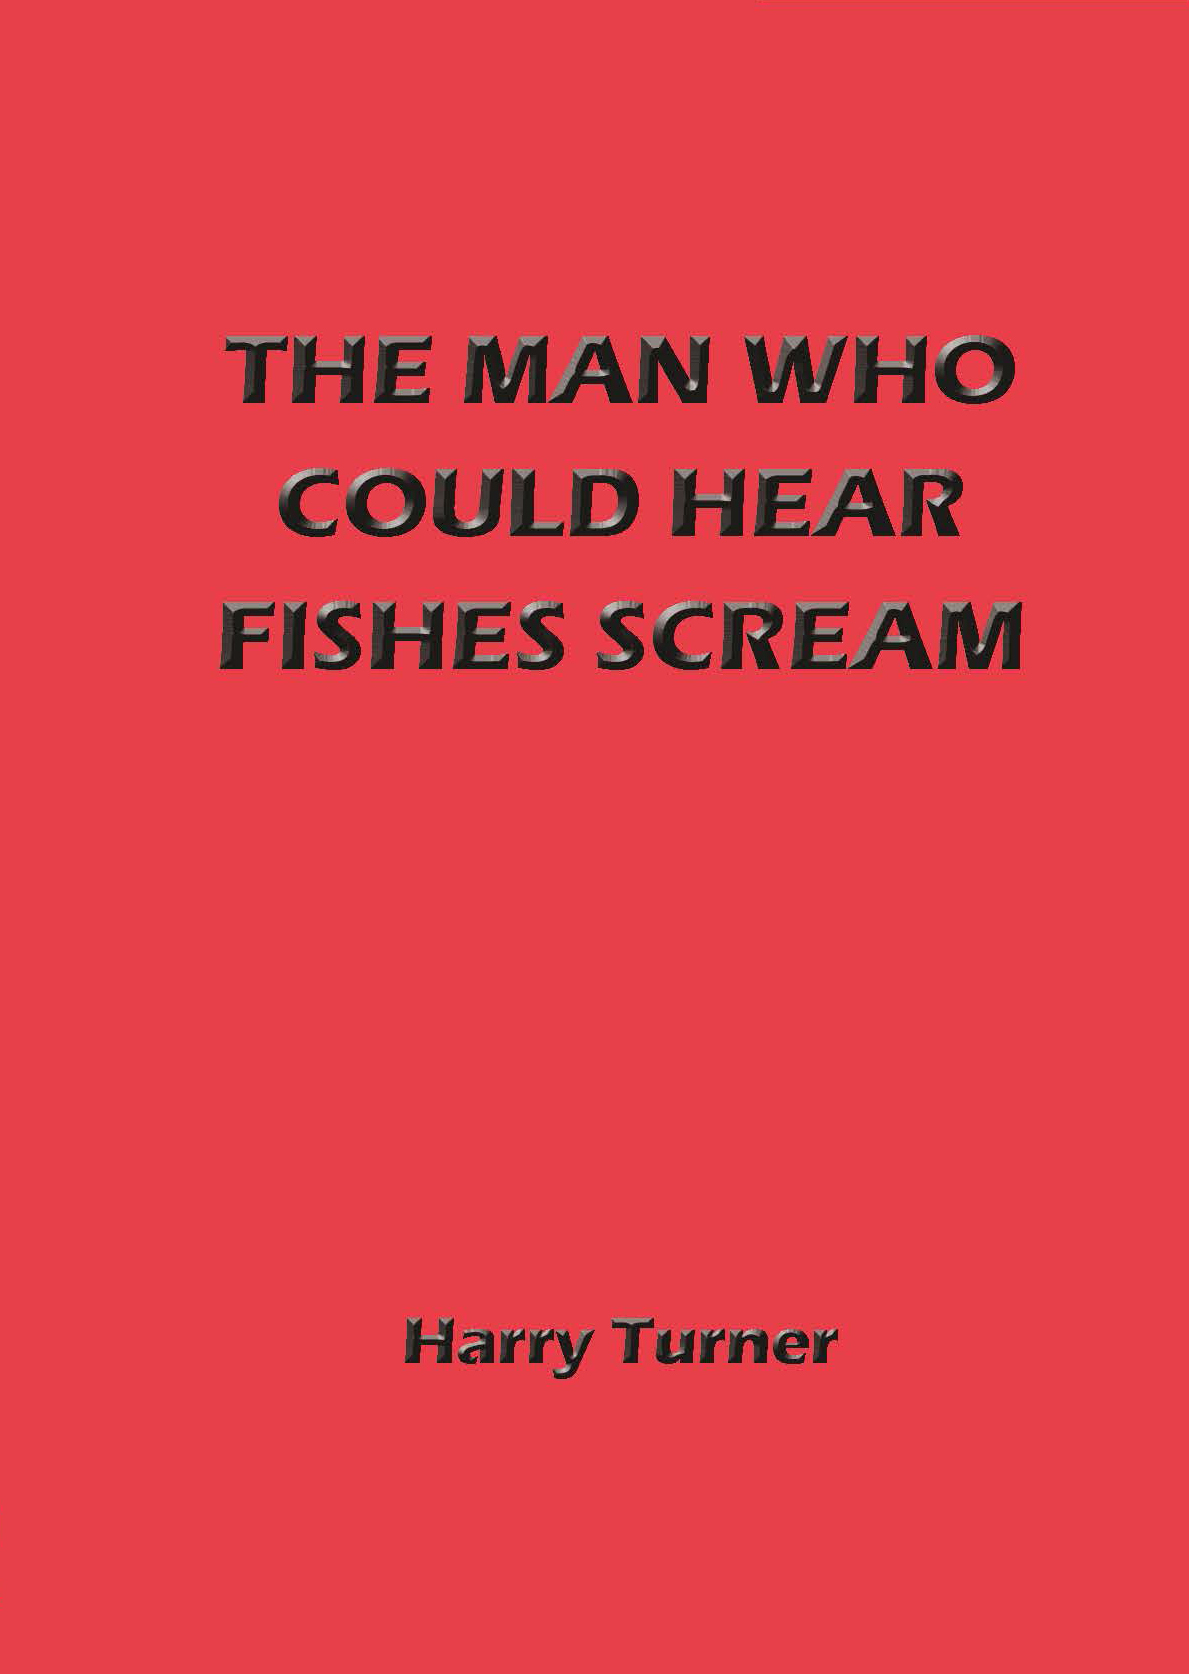 The Man Who Could Hear Fishes Scream